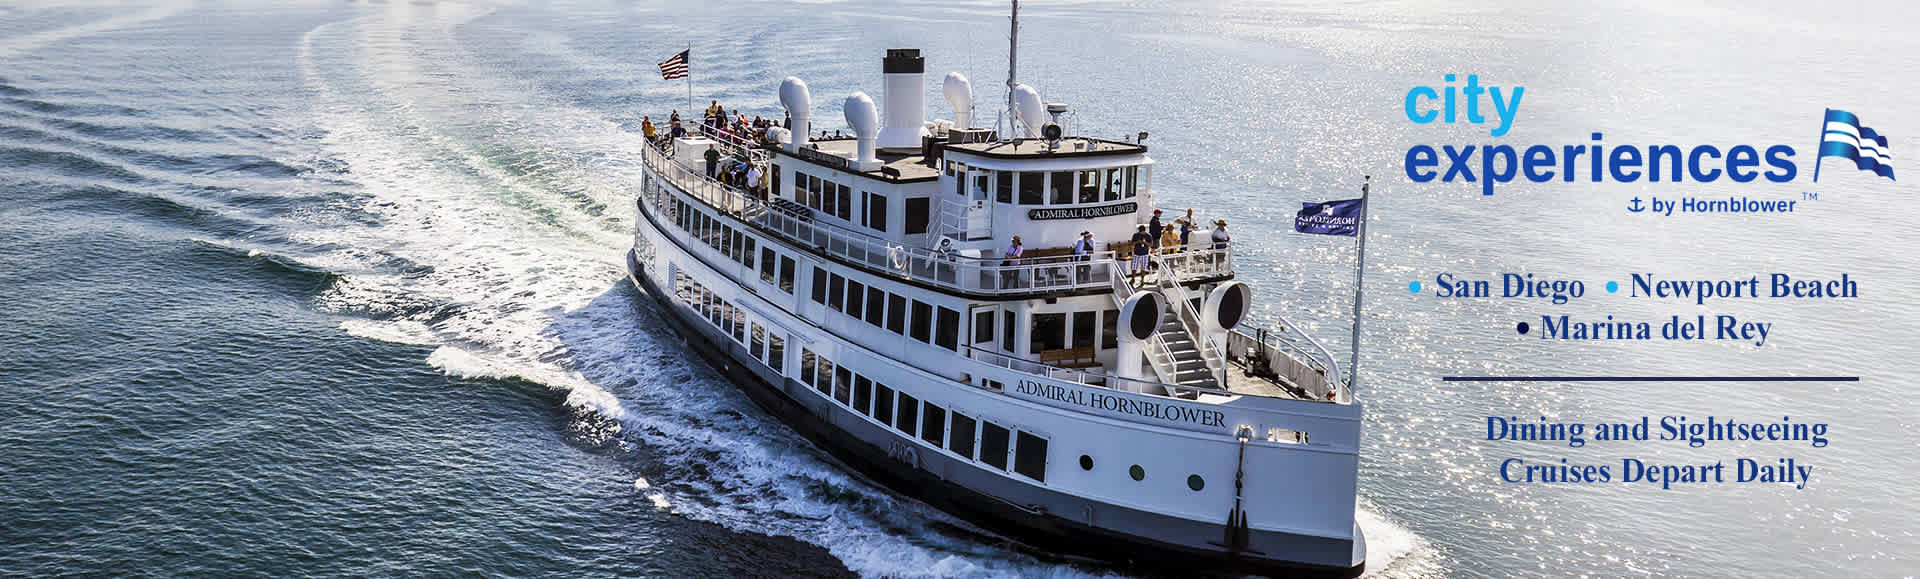 Hornblower Cruises & Events Discounted Tickets